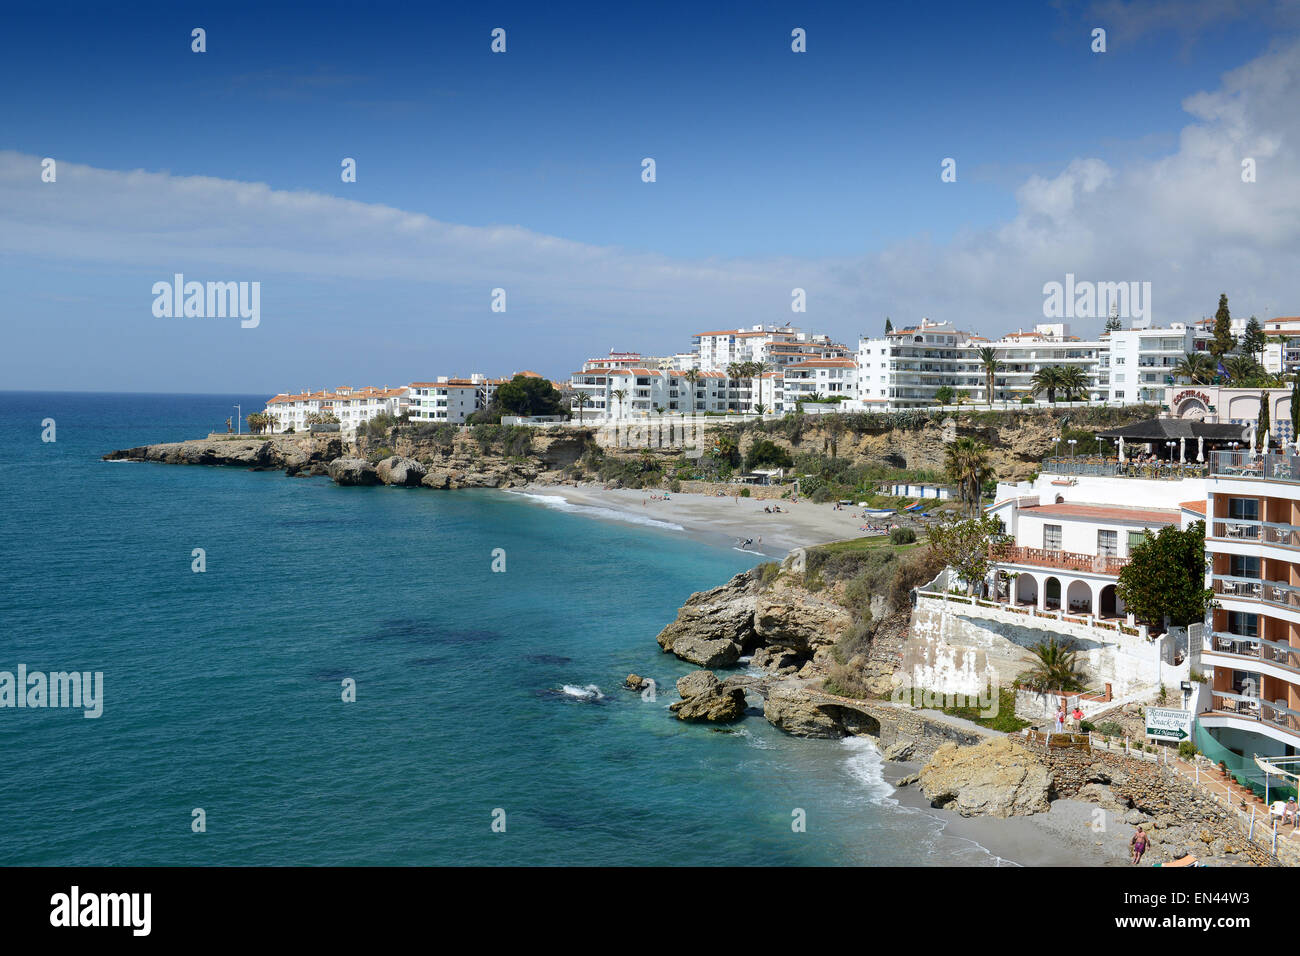 Nerja on the Costa del Sol in Andalusia southern Spain - Stock Image